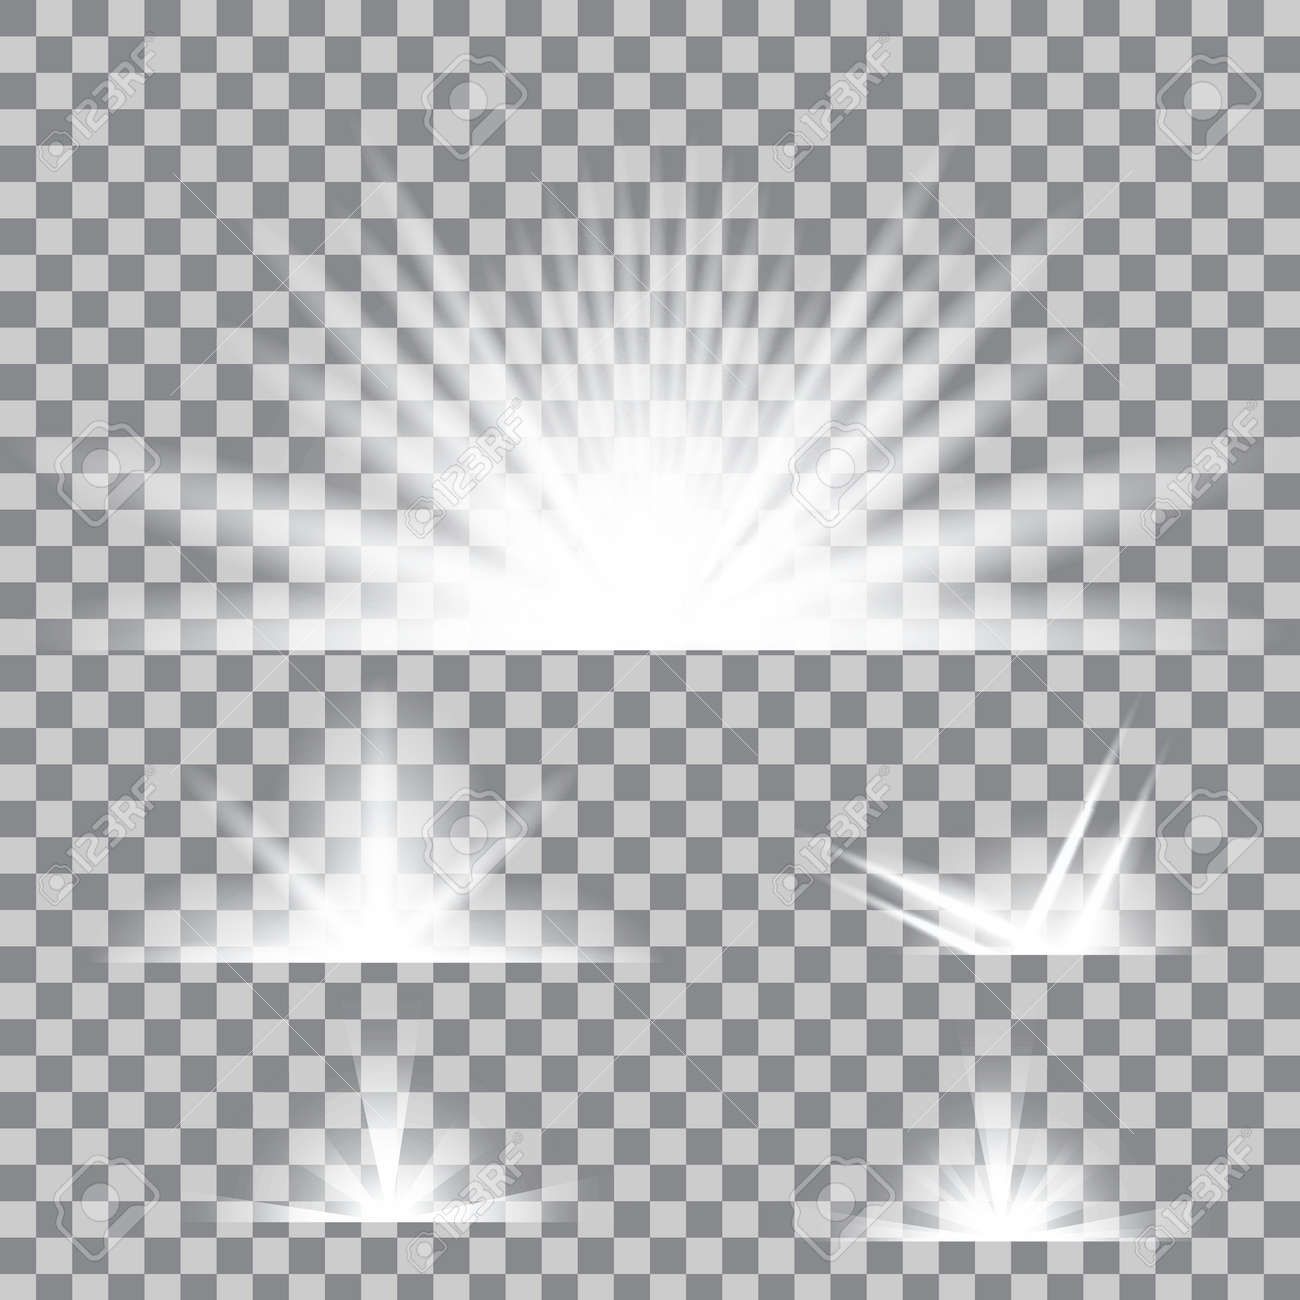 Creative concept Vector set of glow light effect stars bursts with sparkles isolated on background. For illustration template art design, banner for Christmas celebrate, magic flash energy ray. - 53911399